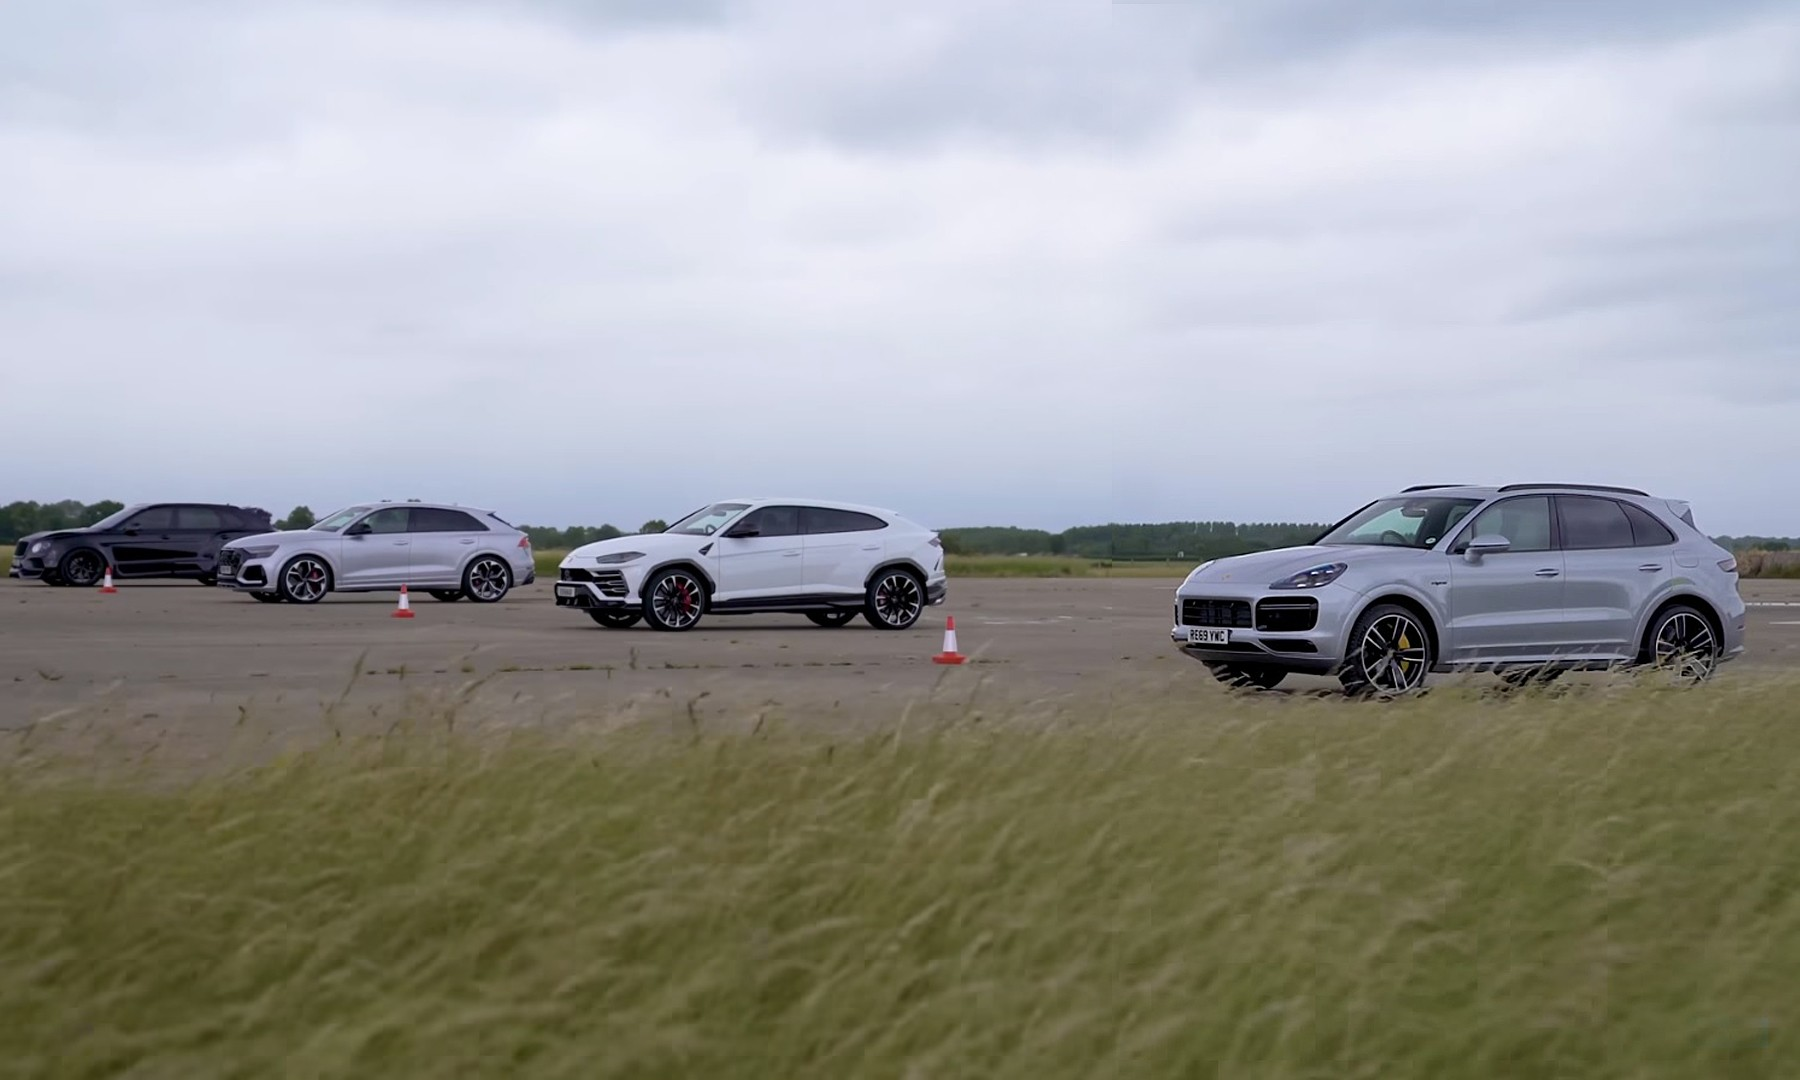 High-Performance SUV Drag Race